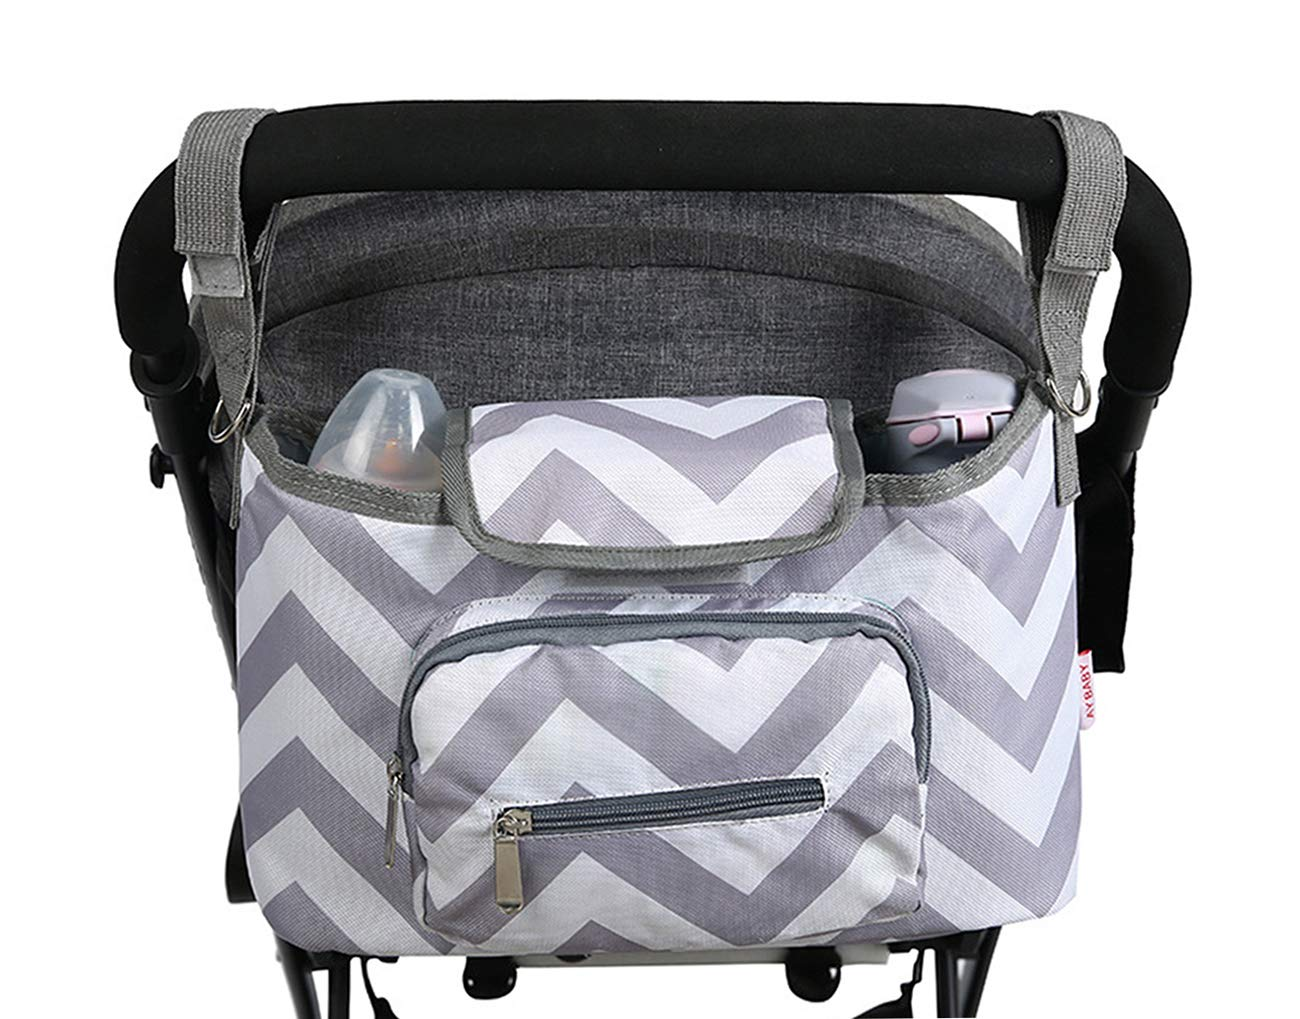 Parent Universal Stroller Organizer - Chevron Travel Bag with Shoulder Strap for Carrying Bottles, Wipes, Diapers, Toys & Snacks. Insert Cup Holder, Storage Pockets (Grey)